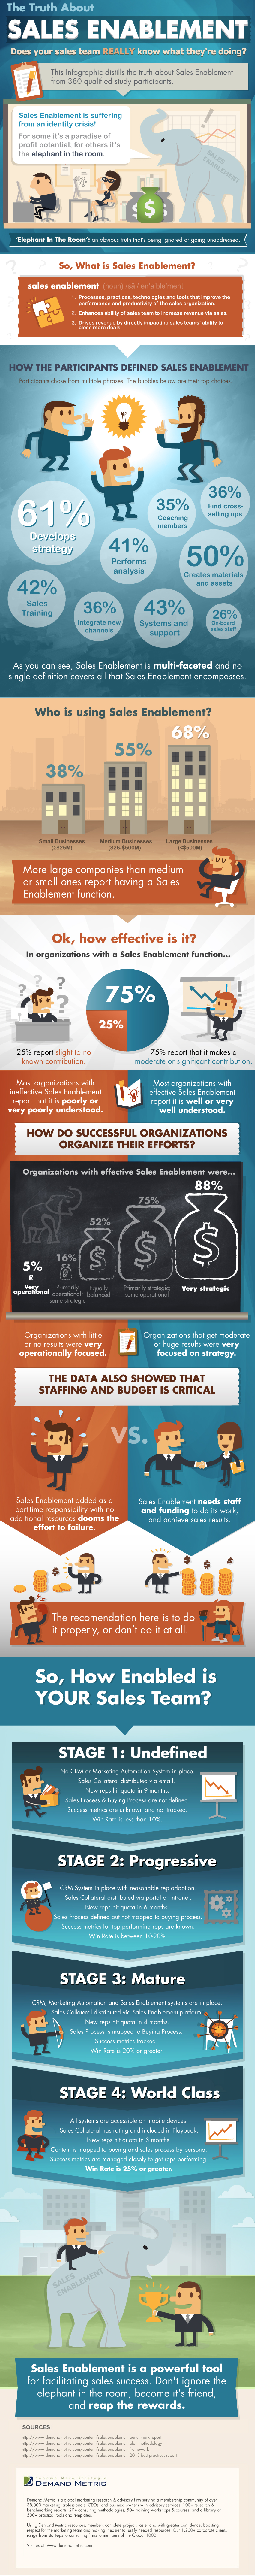 Infographic of sales enablement makes you a kickass sales manager